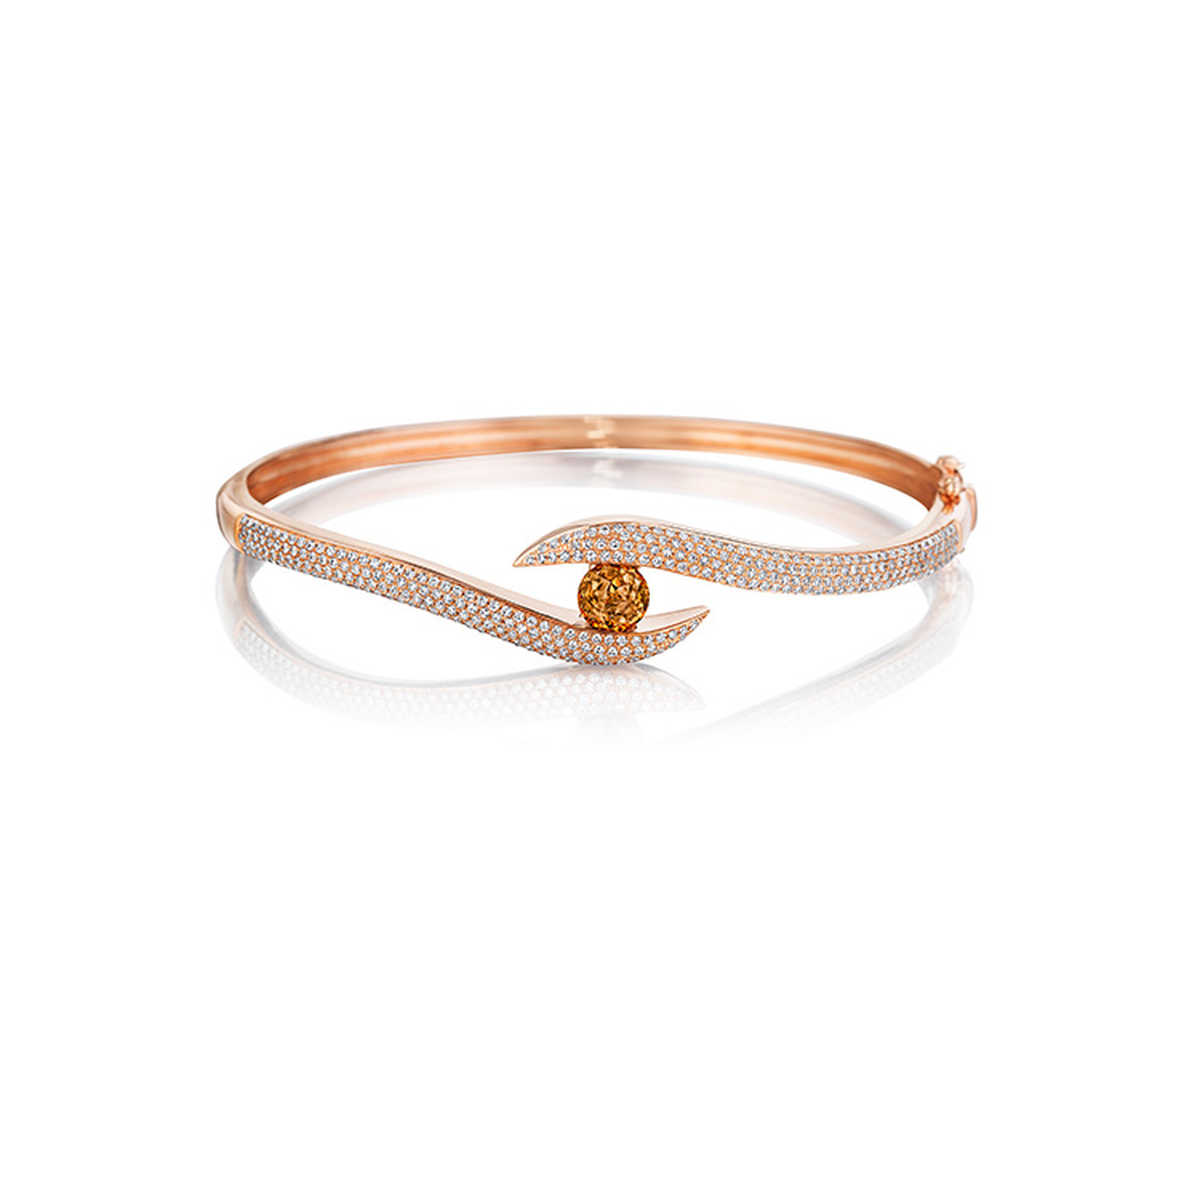 connection rose karat seraphine light collections shop crown bracelets seraphina bangle gold bangles of